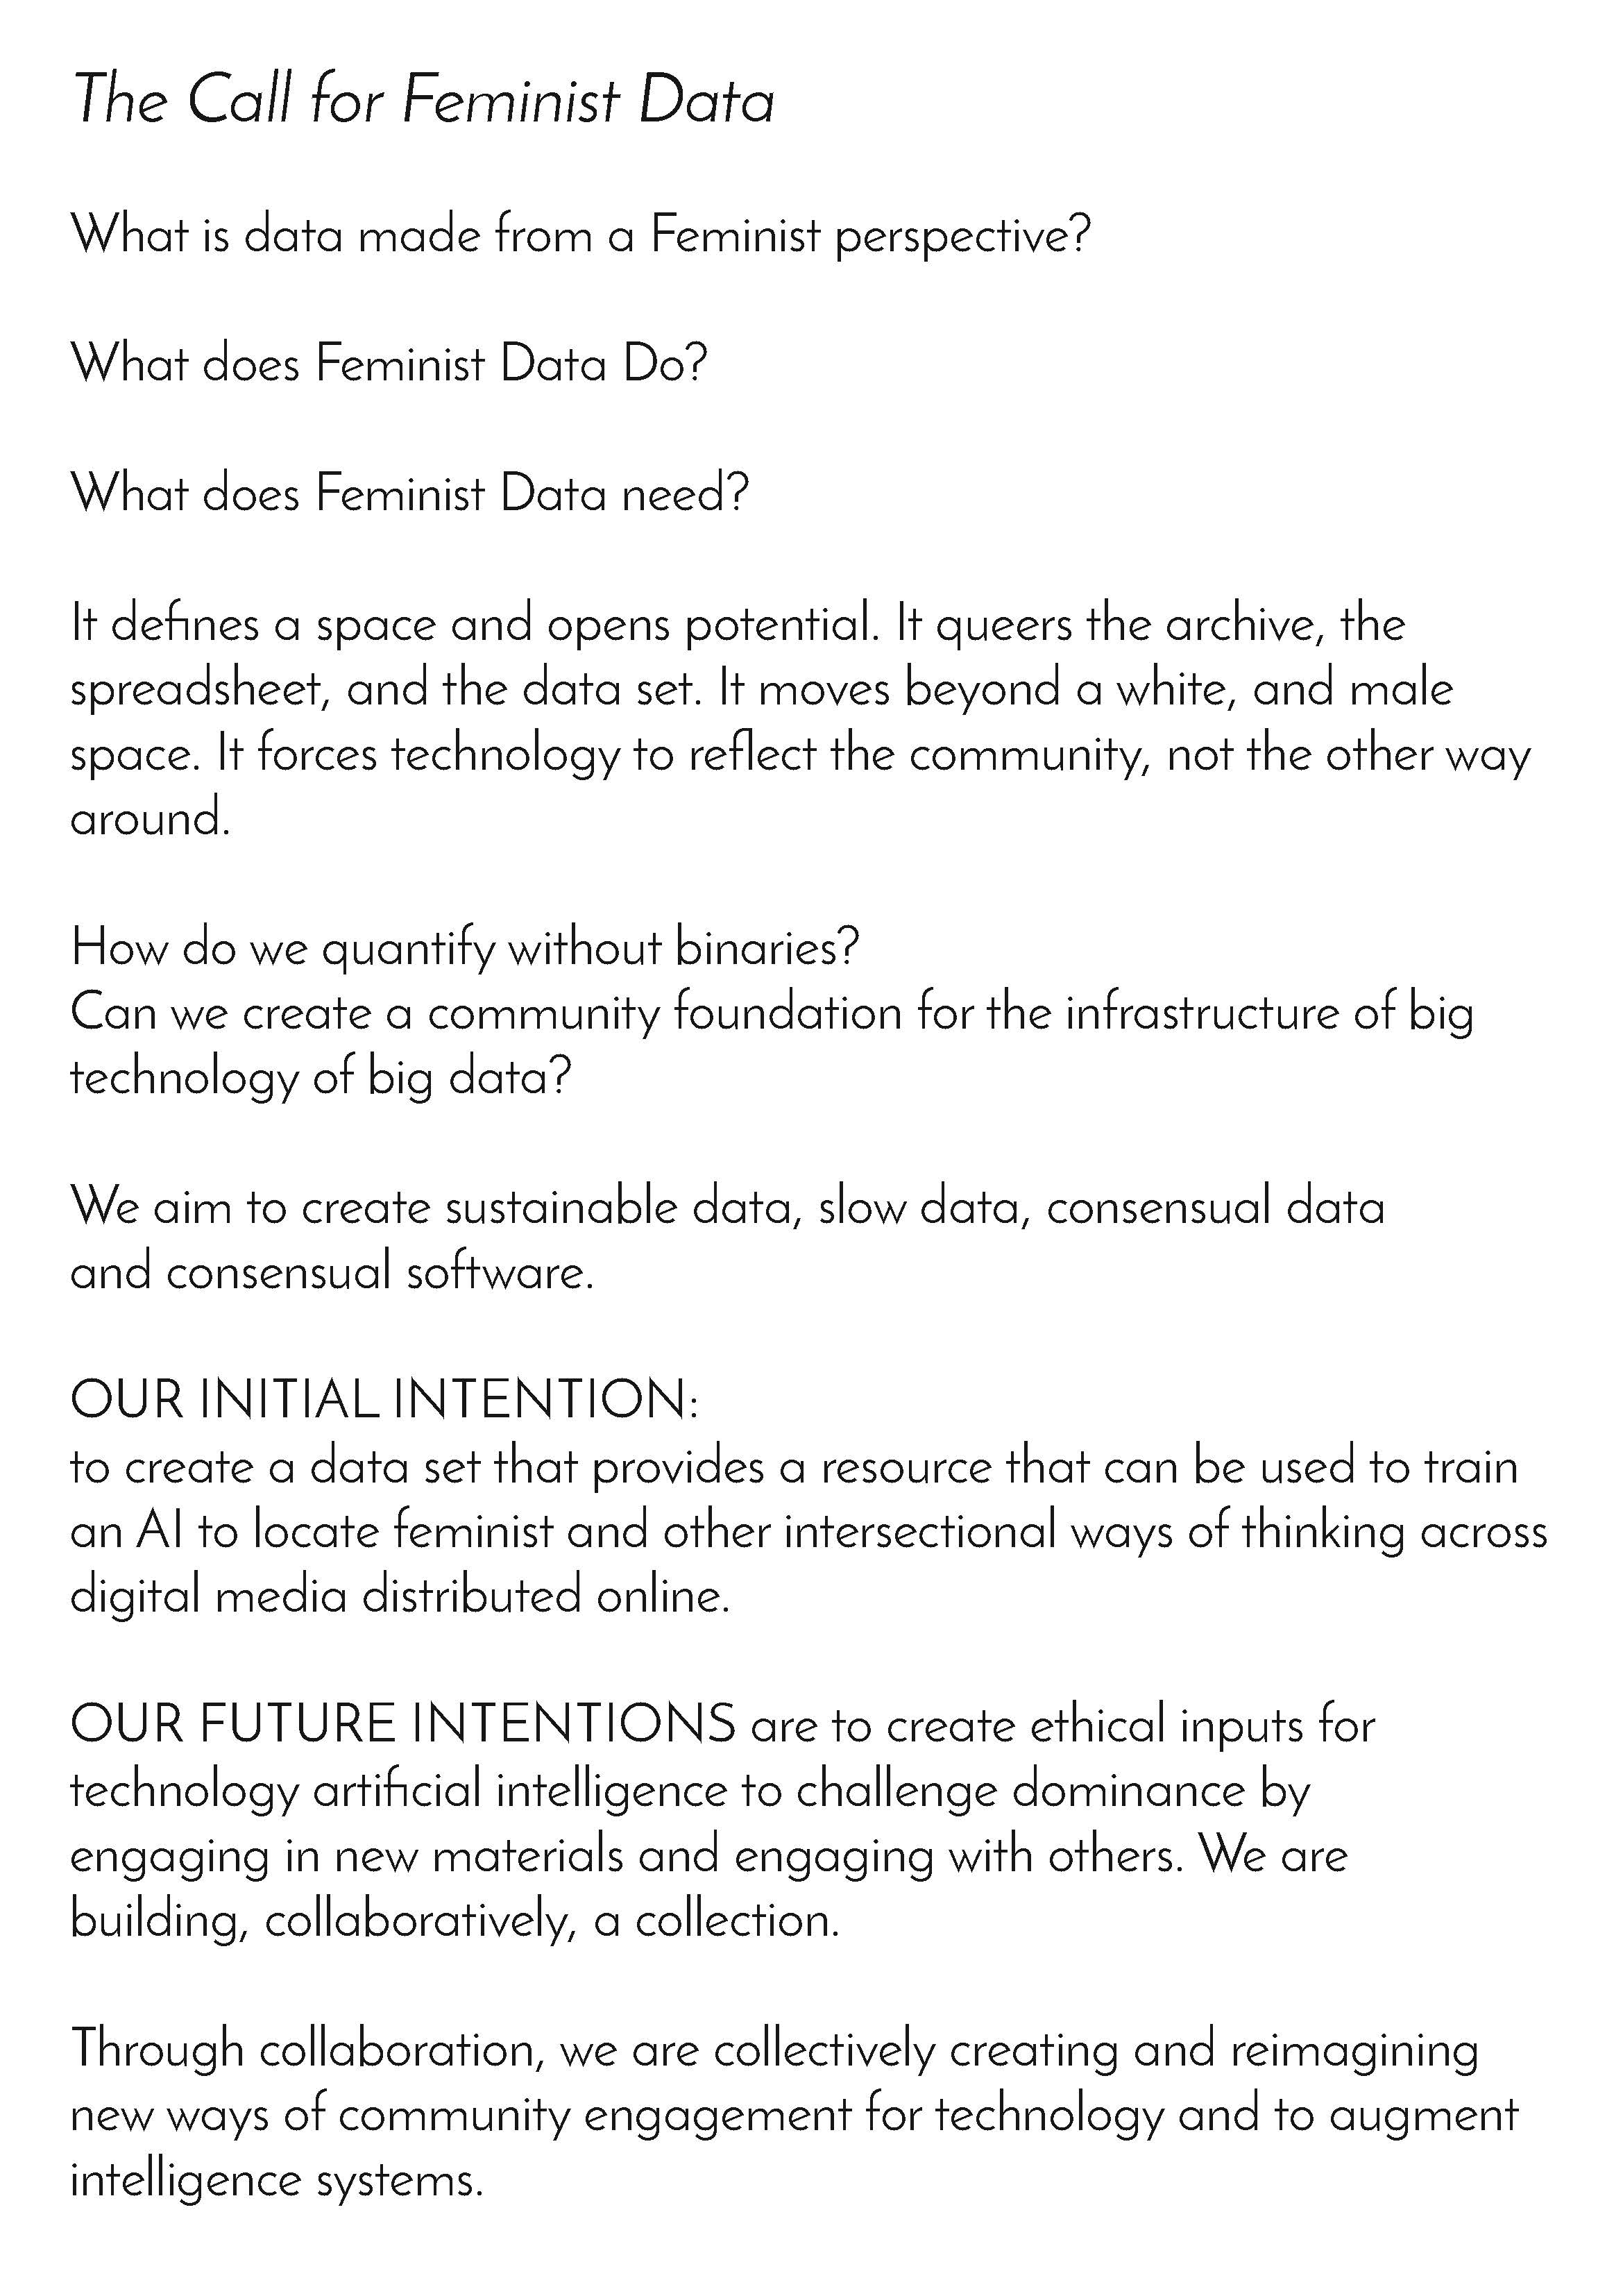 Our Manifesto: outlined at SPACE Art and Technology in 2017, adapted in 2018 for YBCA's Public Square.